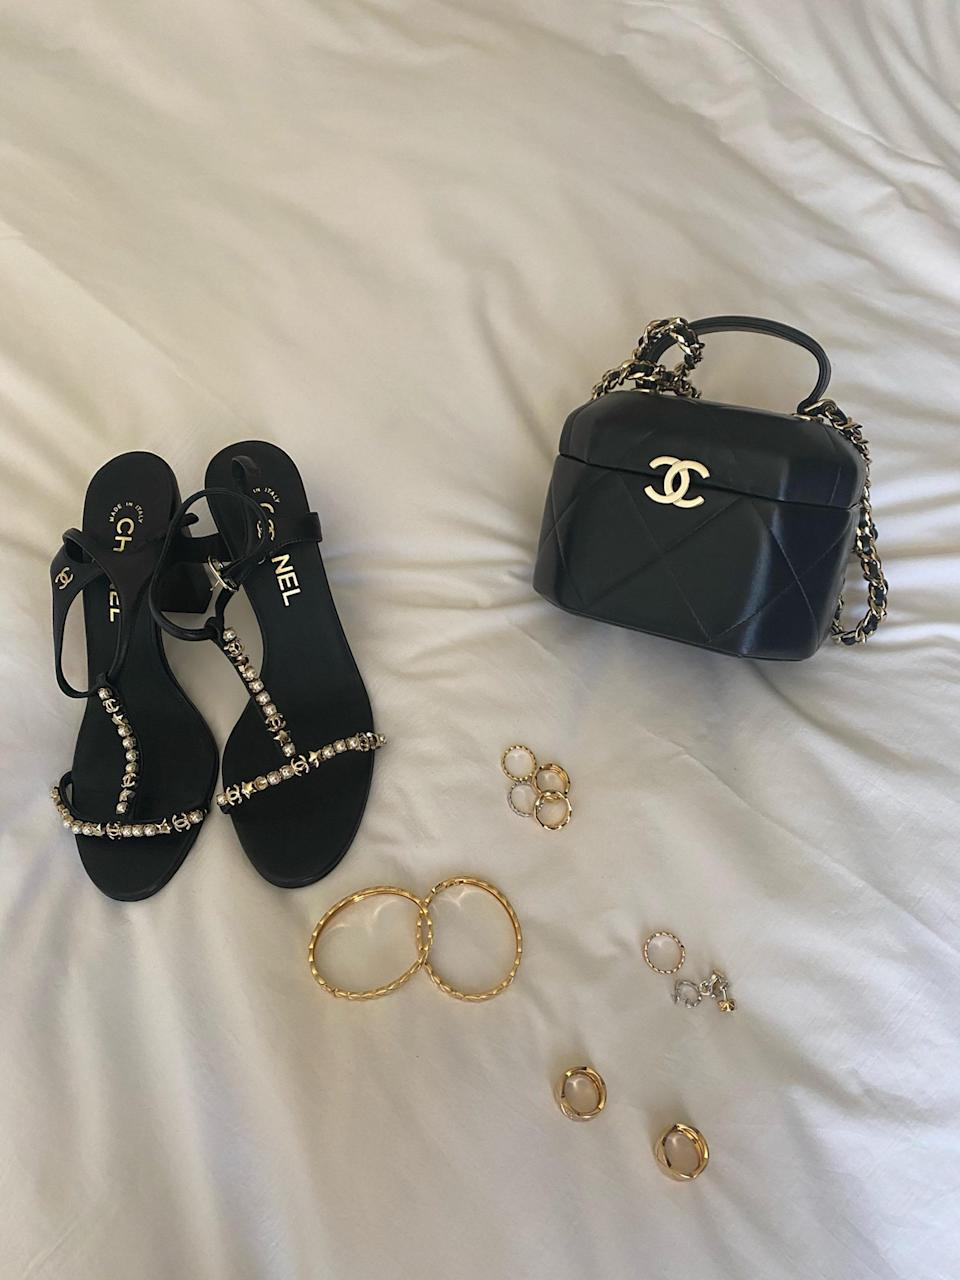 So many sparkly things! That bag can wildly hold so much, and I was obsessed with the CHANEL Coco Crush rings; I felt so empowered wearing them.